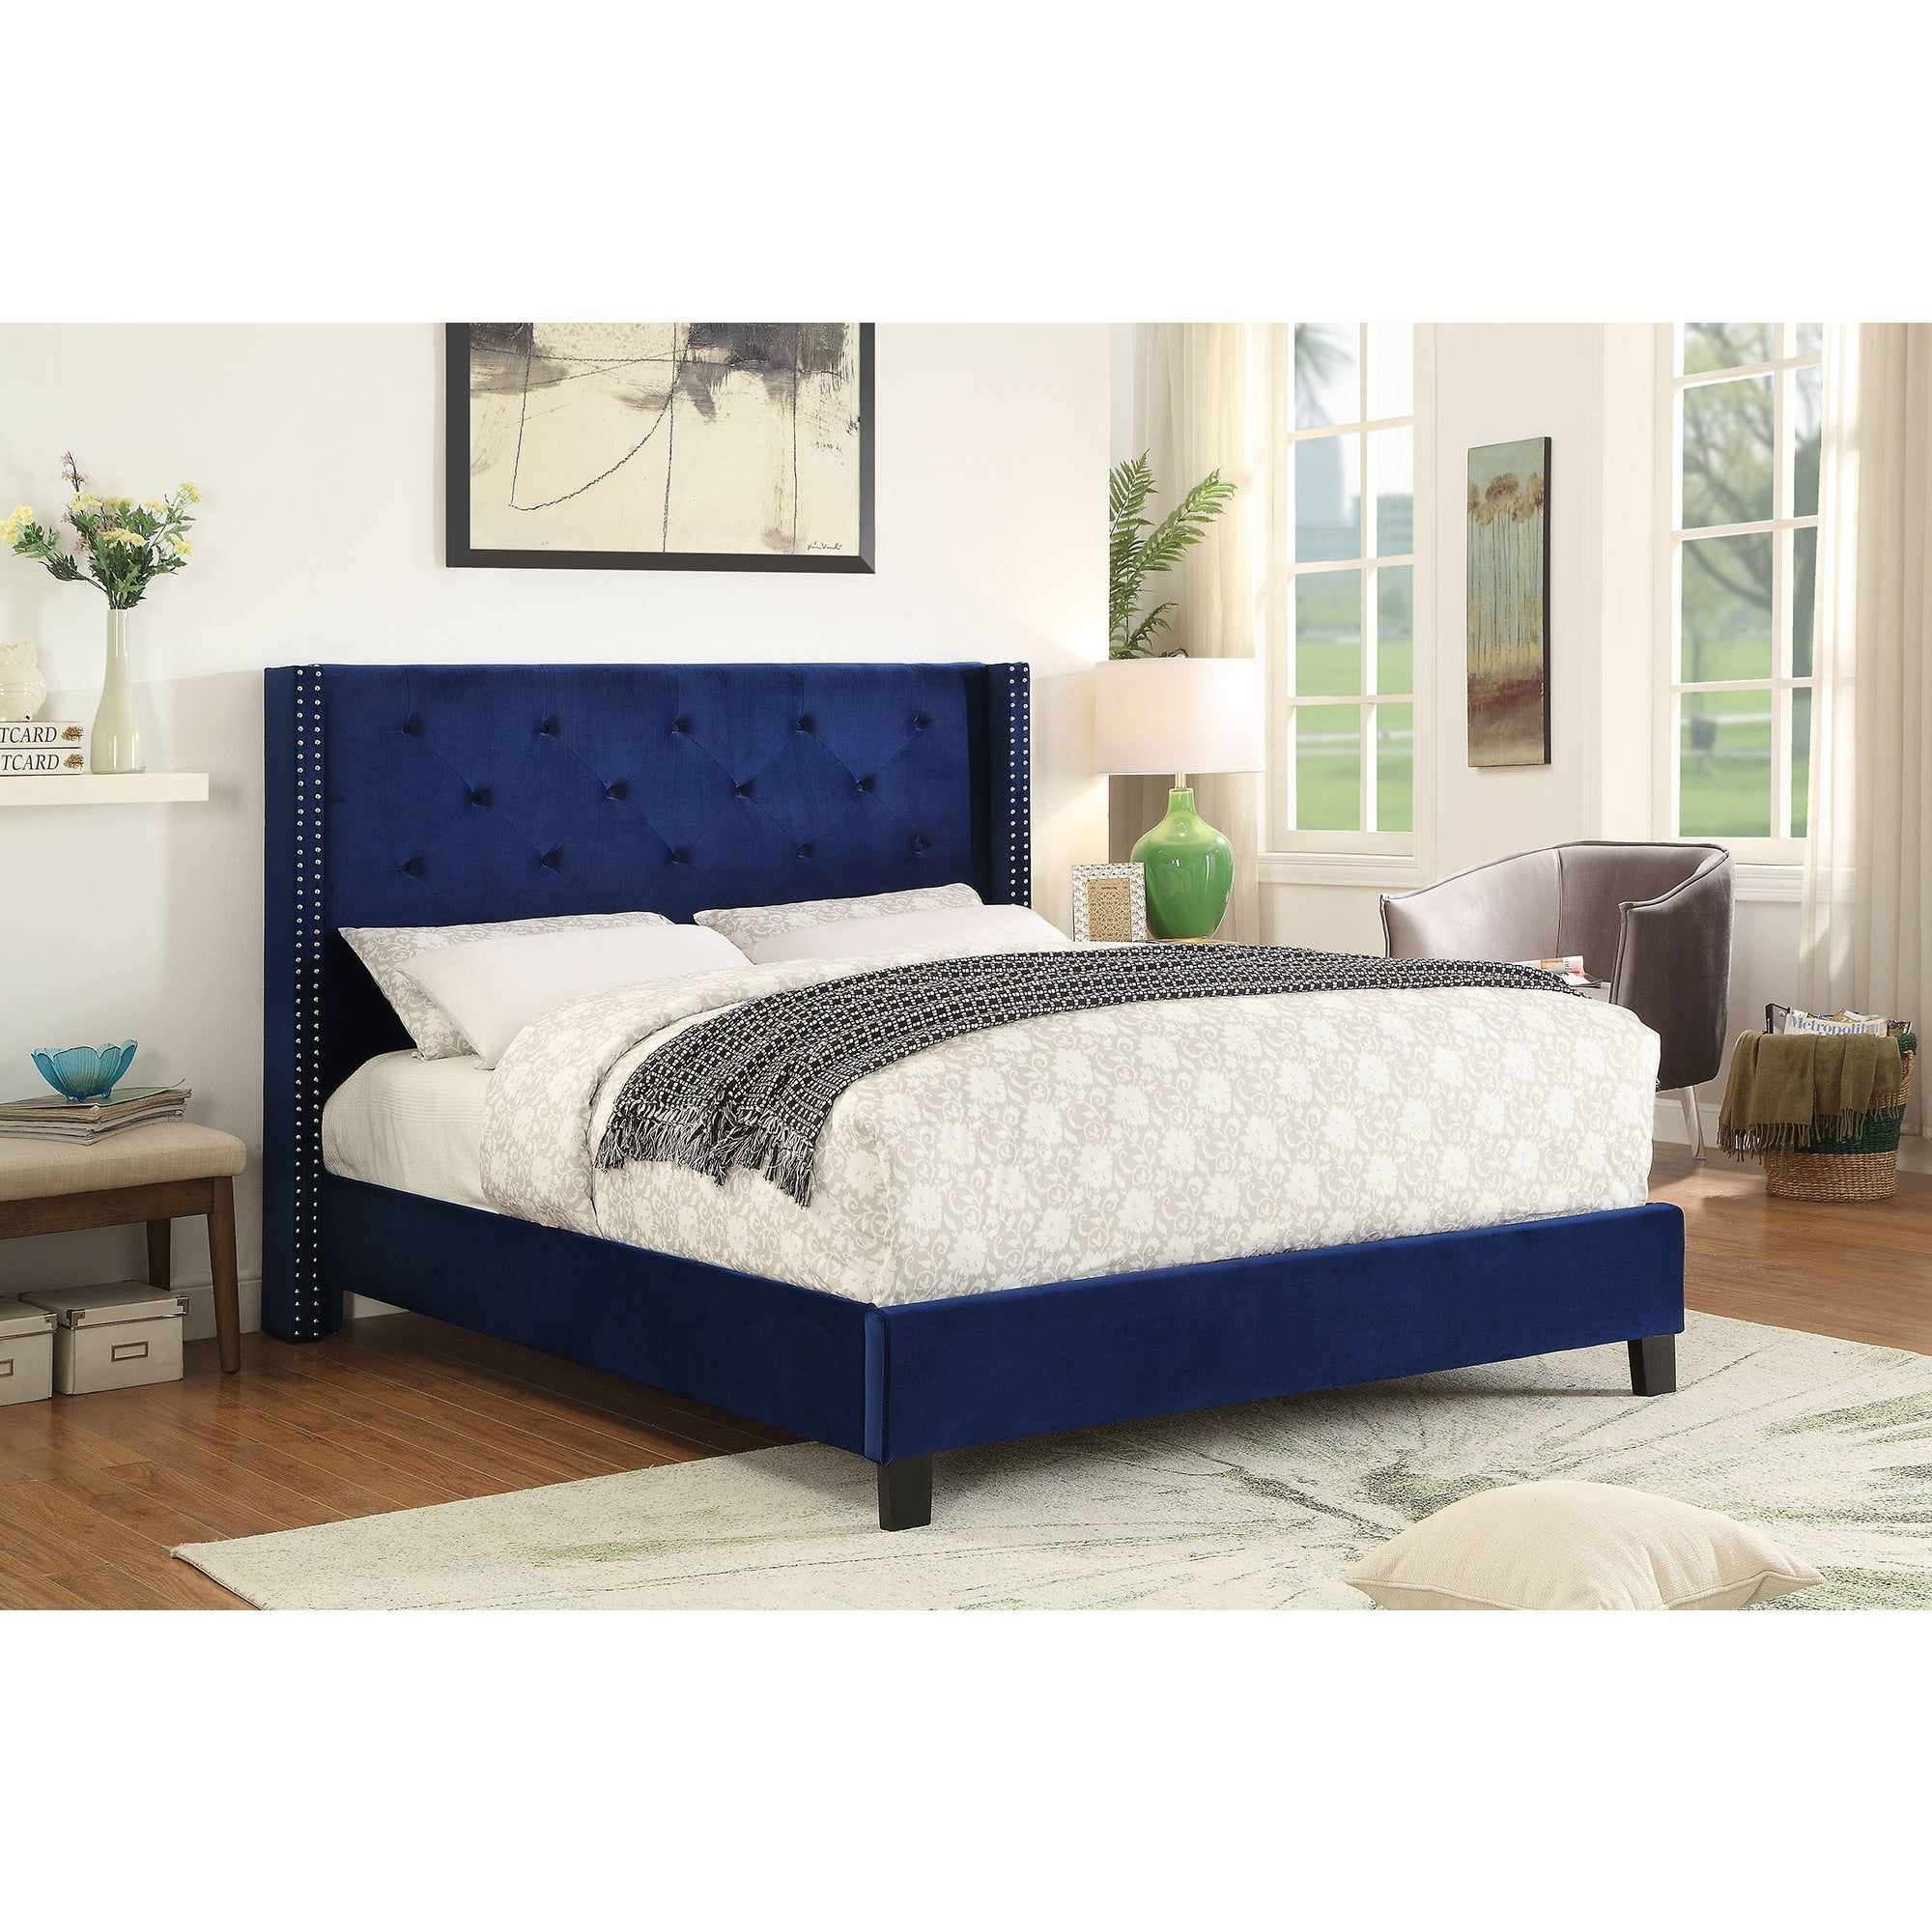 gramercy en ip bed walmart south platform canada queen drawers white inches with shore